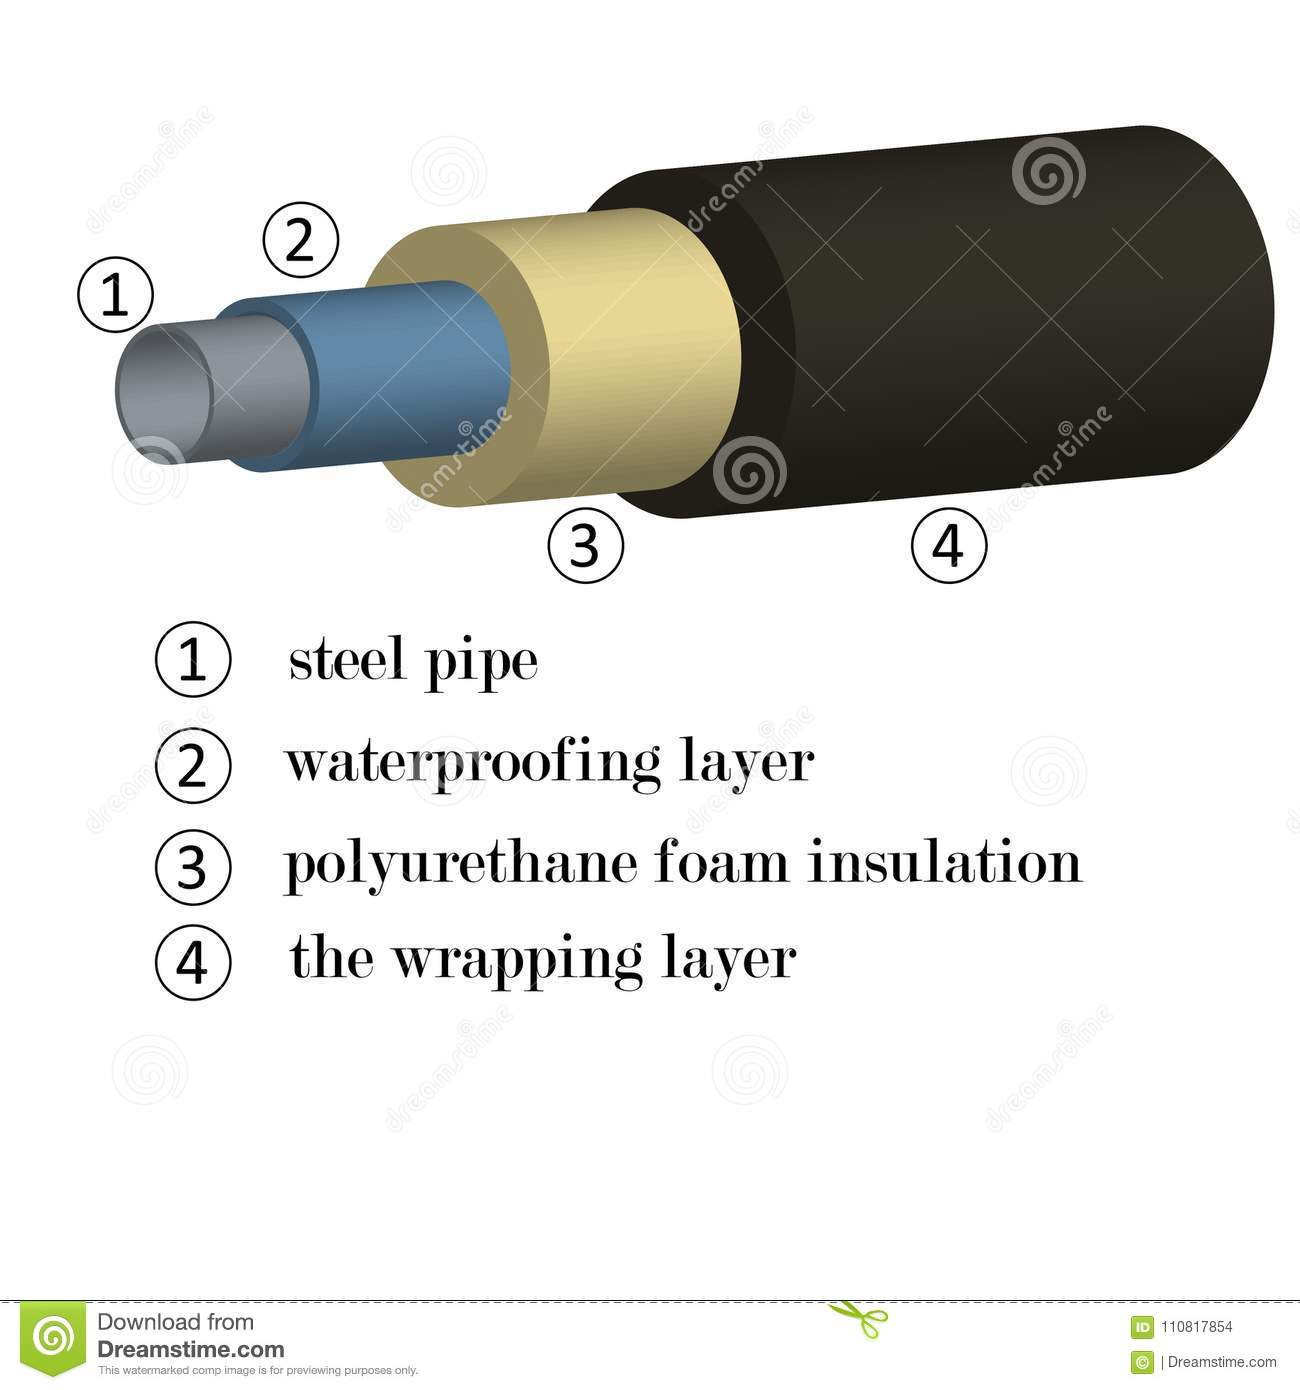 3D Image Of Steel Pipes In Foam Insulation With An